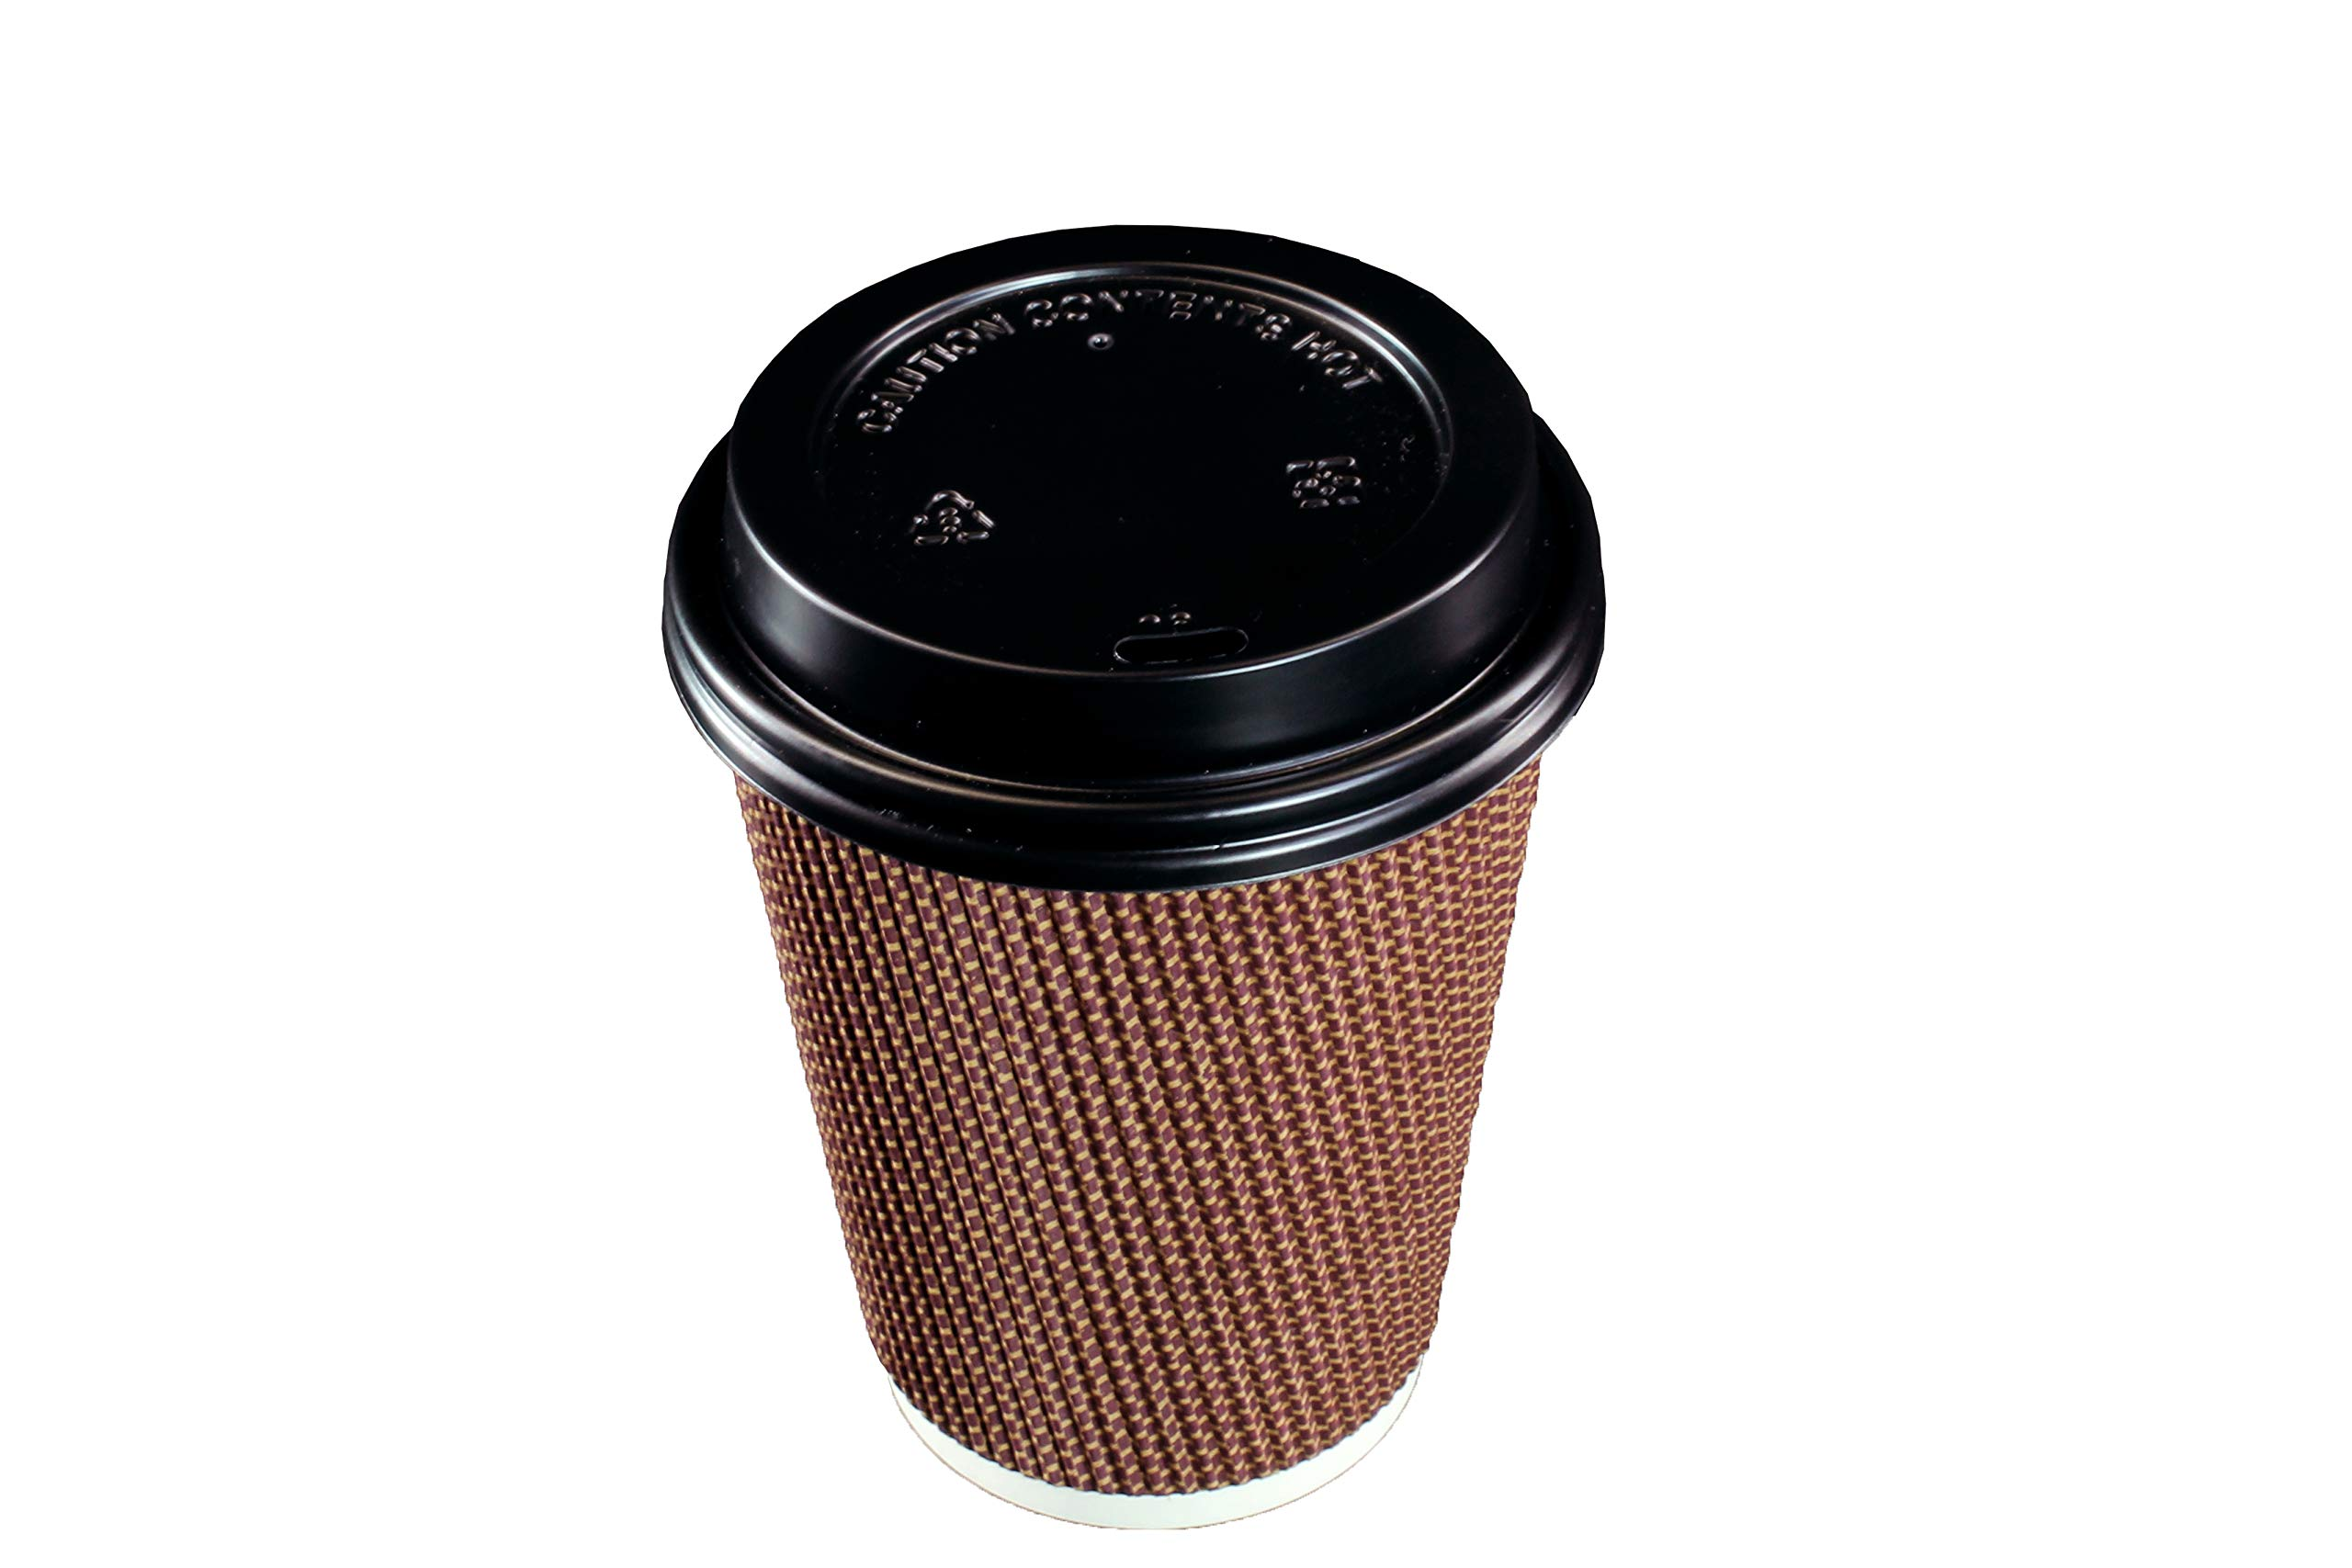 [400 SETS] 12 oz Disposable Double Walled Hot Cups with Lids - No Sleeves needed Premium Insulated Ripple Wall Hot Coffee Tea Chocolate Drinks Perfect Travel To Go Paper Cup and lid Brown Geometric